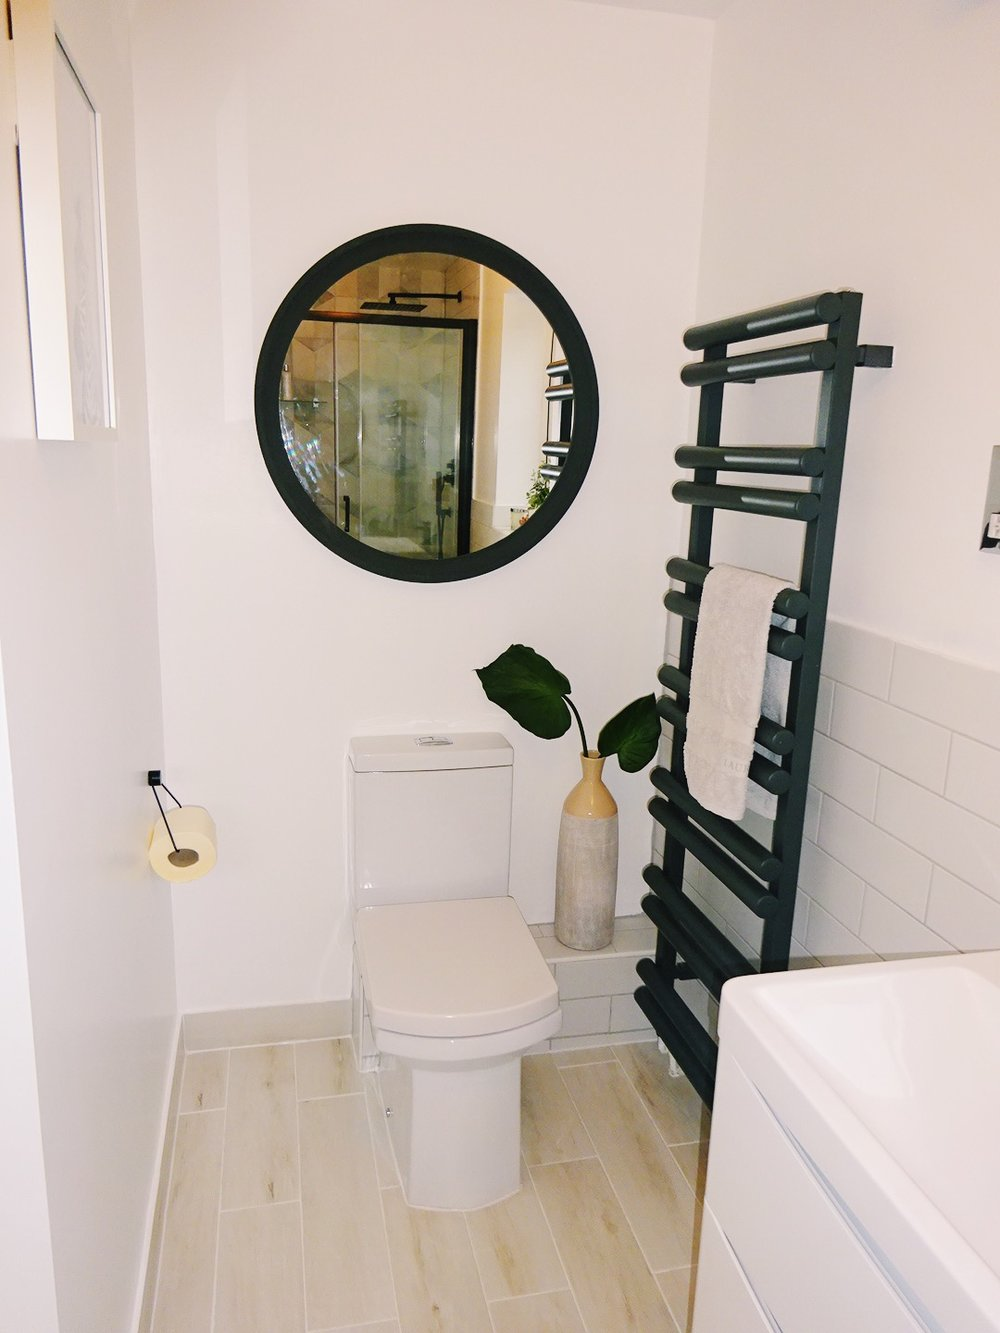 The white wood effect tiles for the floor are one of our favourite additions, I'd have them everywhere in the house! These are from Walls and Floors. The tall black towel rail makes a statement and goes well with the round mirror which was an IKEA hack, I painted it to achieve that effect.